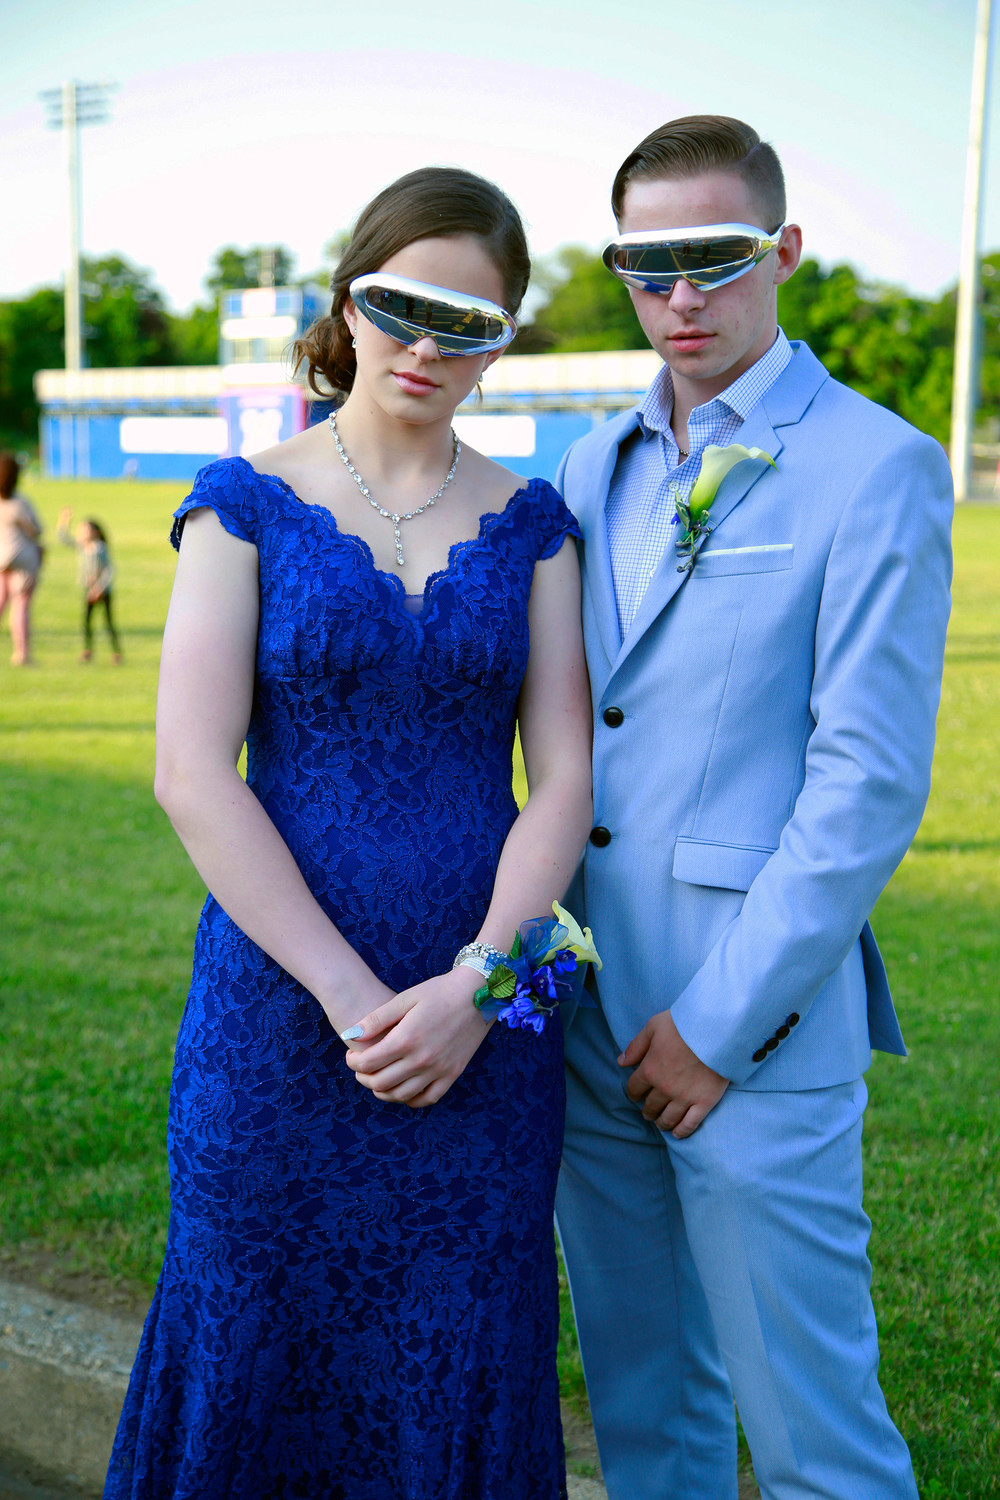 Malverne High School seniors Liz Lawless and Shane McGovern were one of many prom couples that dressed to the nines during their pre-prom red carpet bash on June 7.